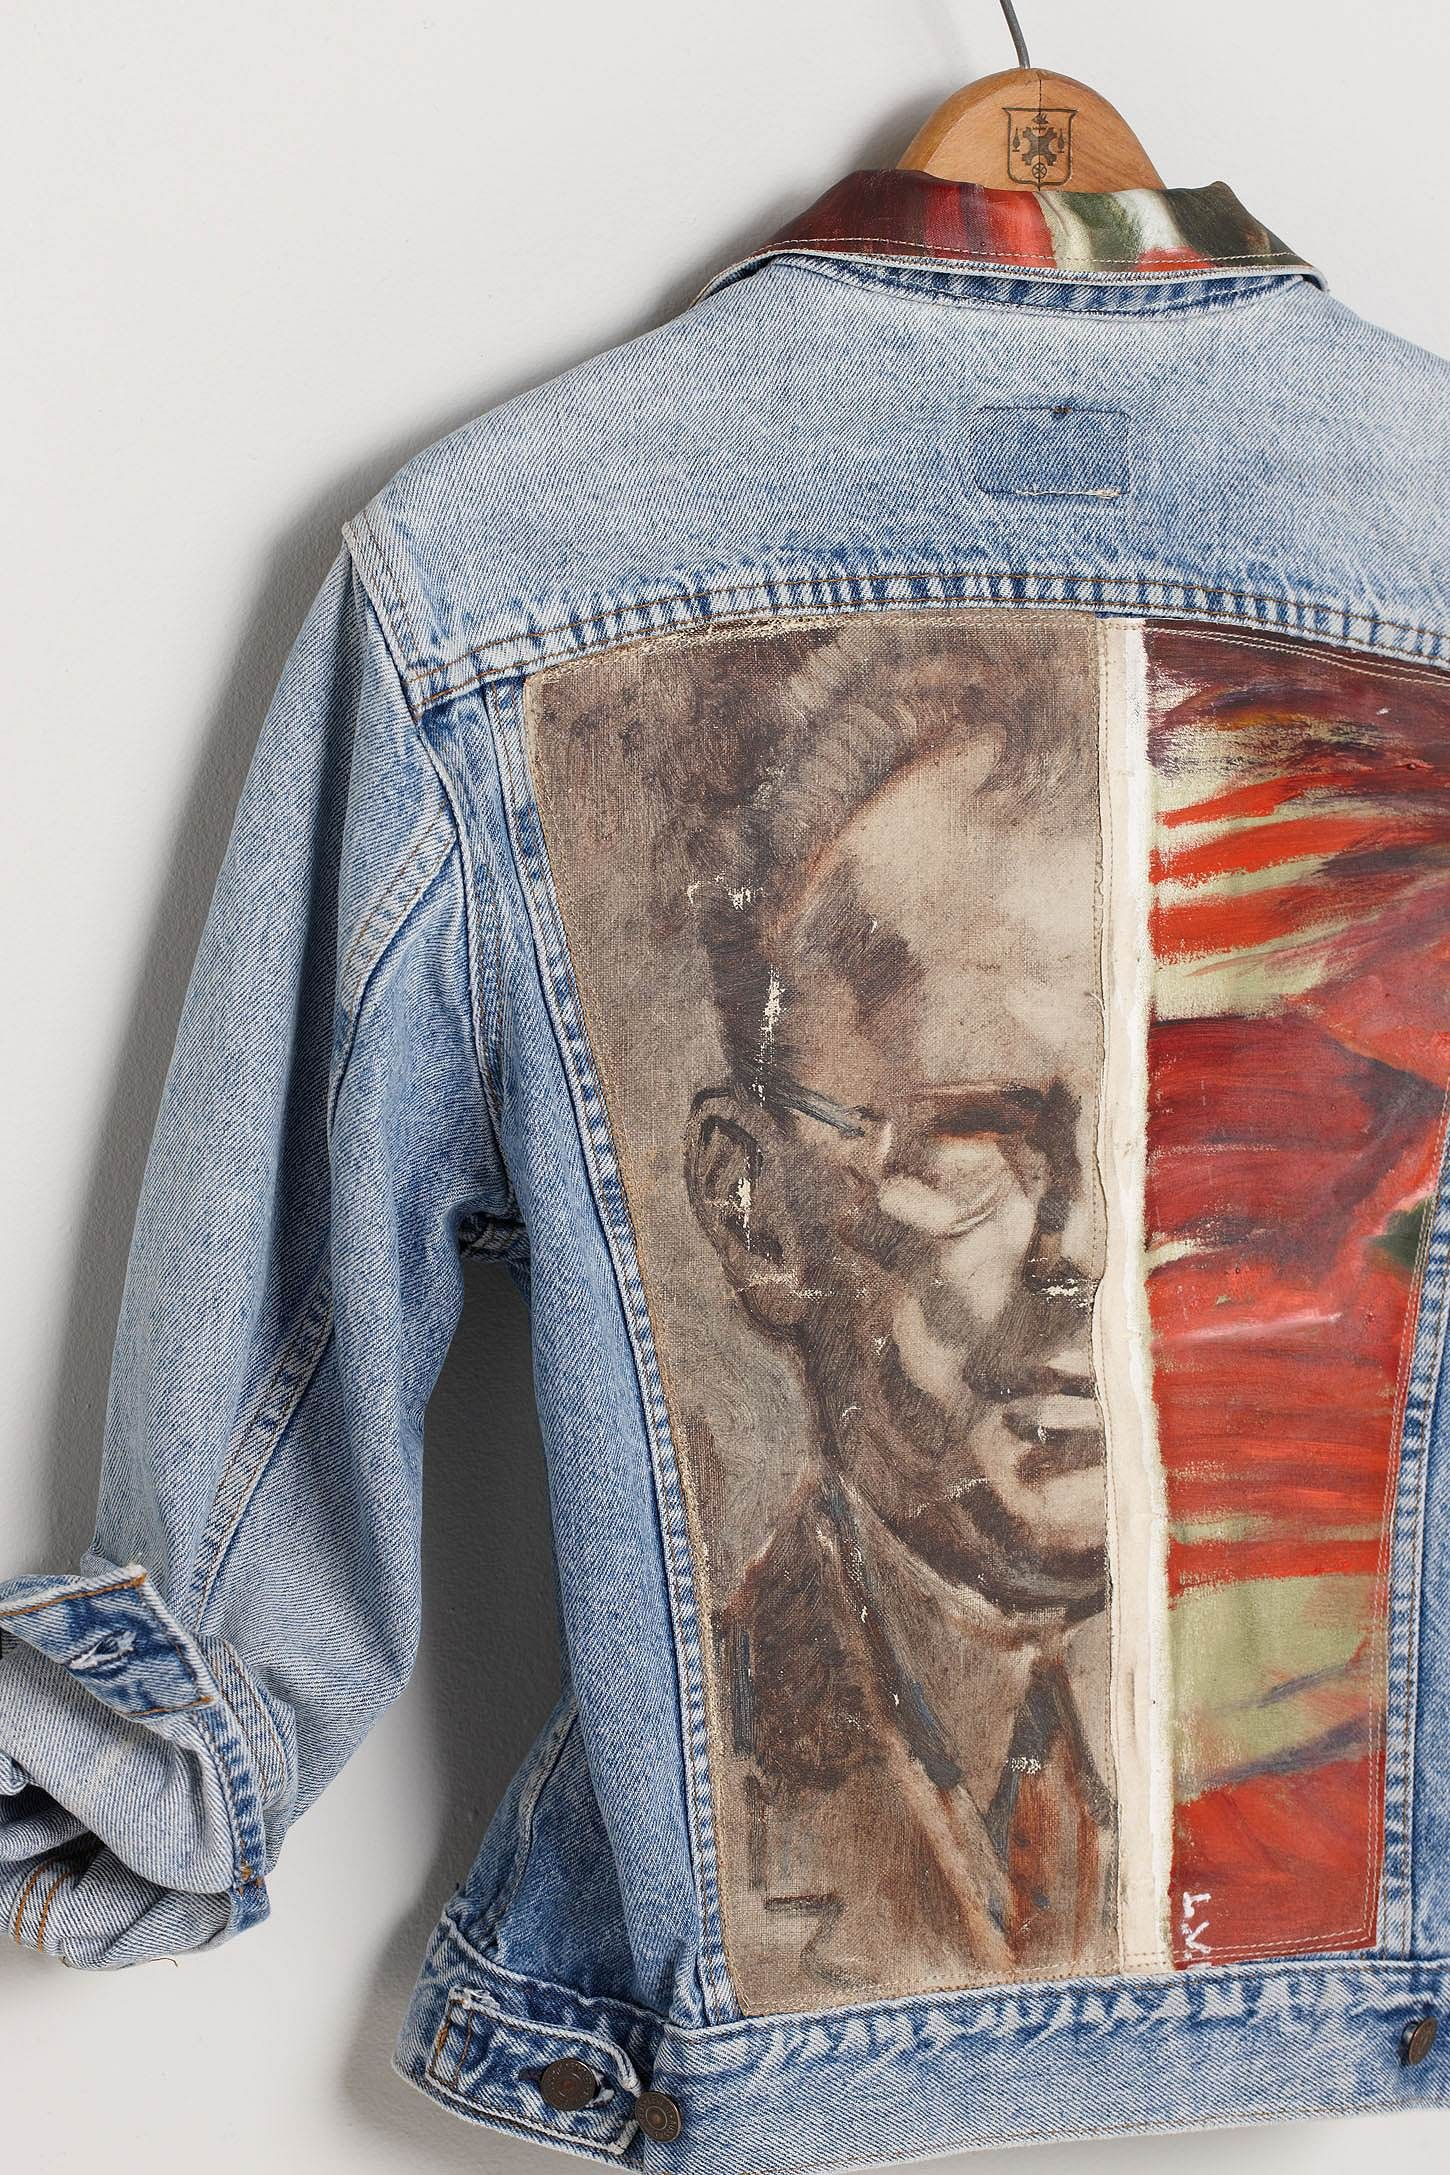 flea-market oil paintings sewn into a denim jacket who would of thought